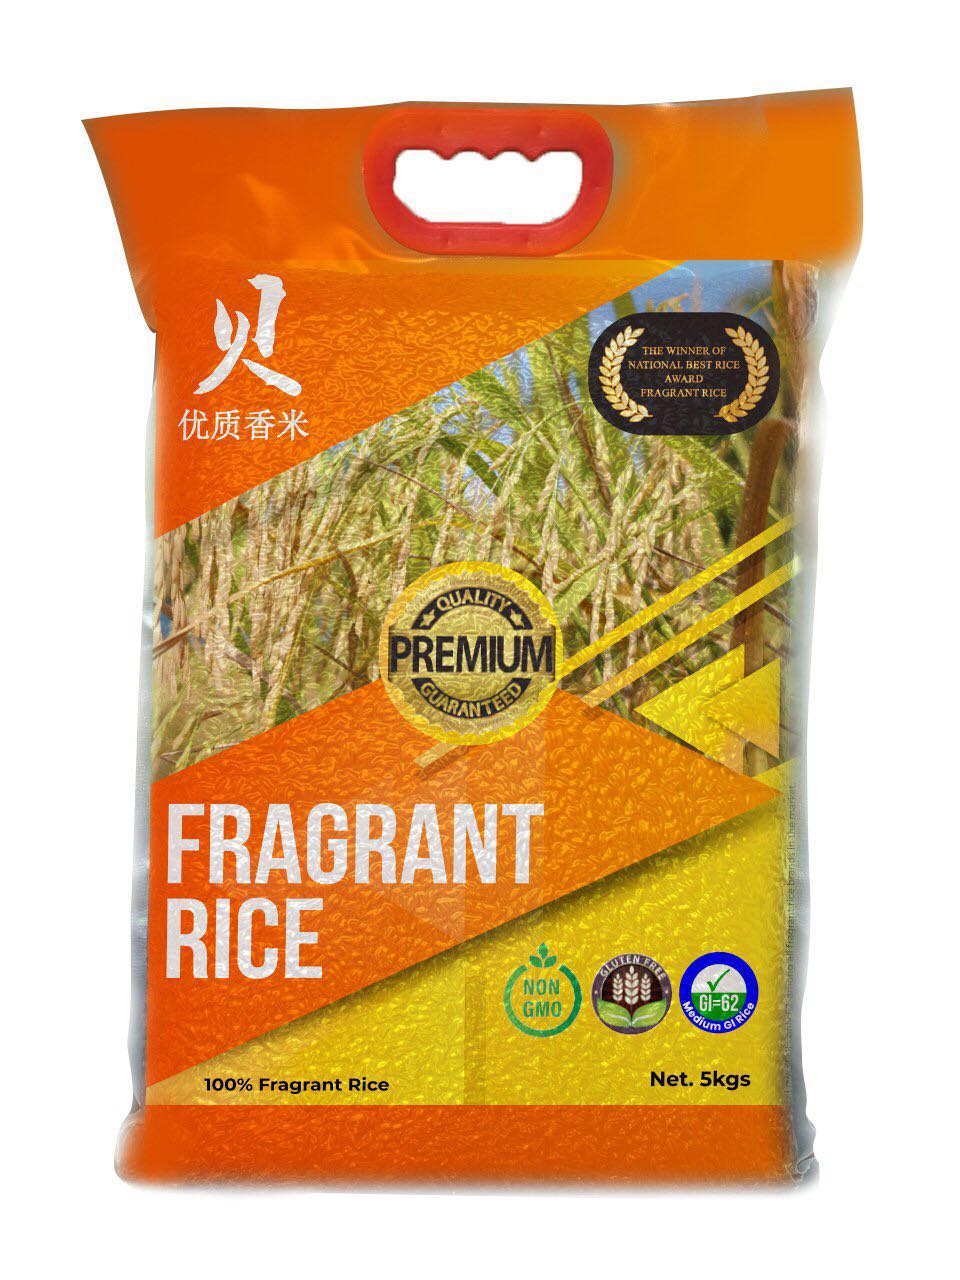 2 Packs Betamore Premium Fragrant Rice - 5 kg